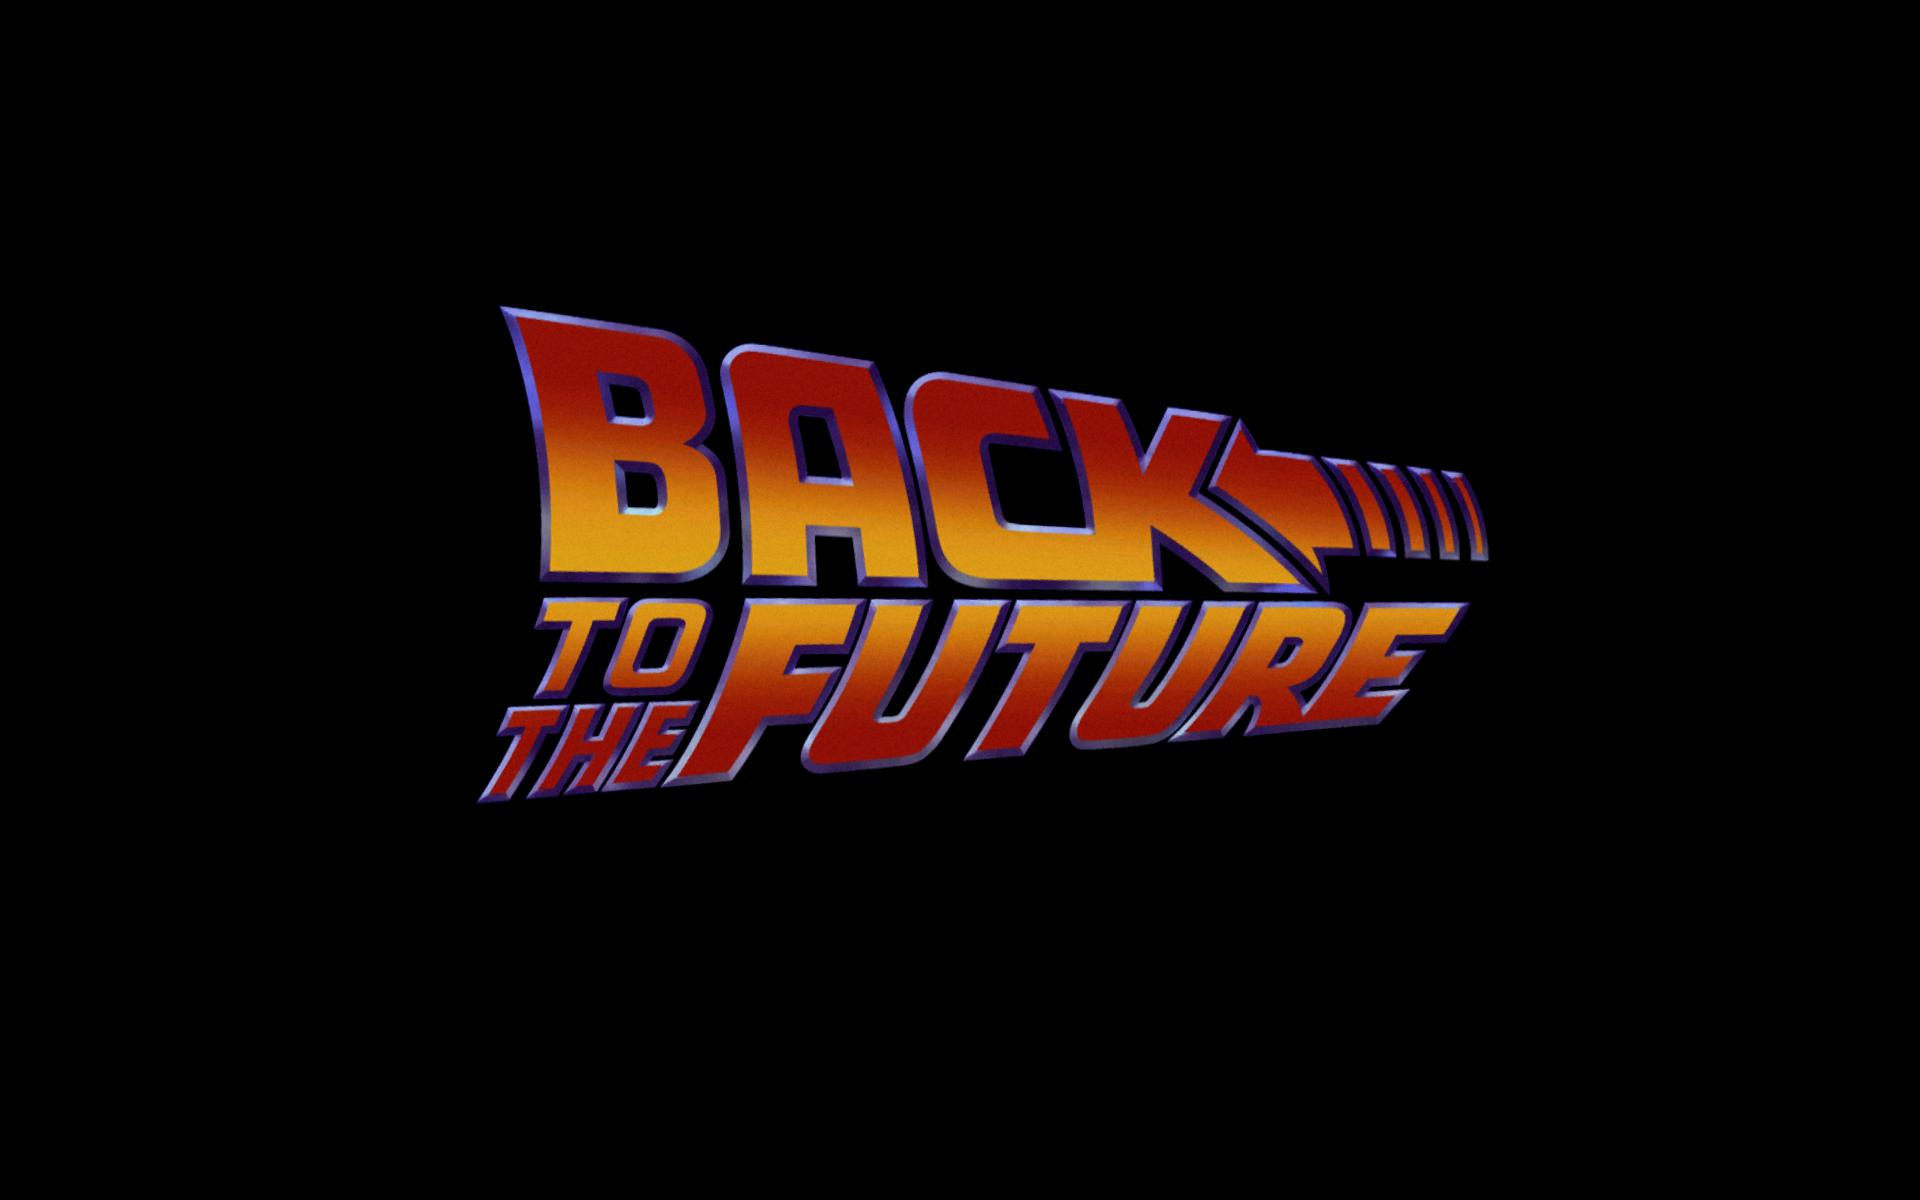 backtothefuture102-2011-02-18-20-51-20-02